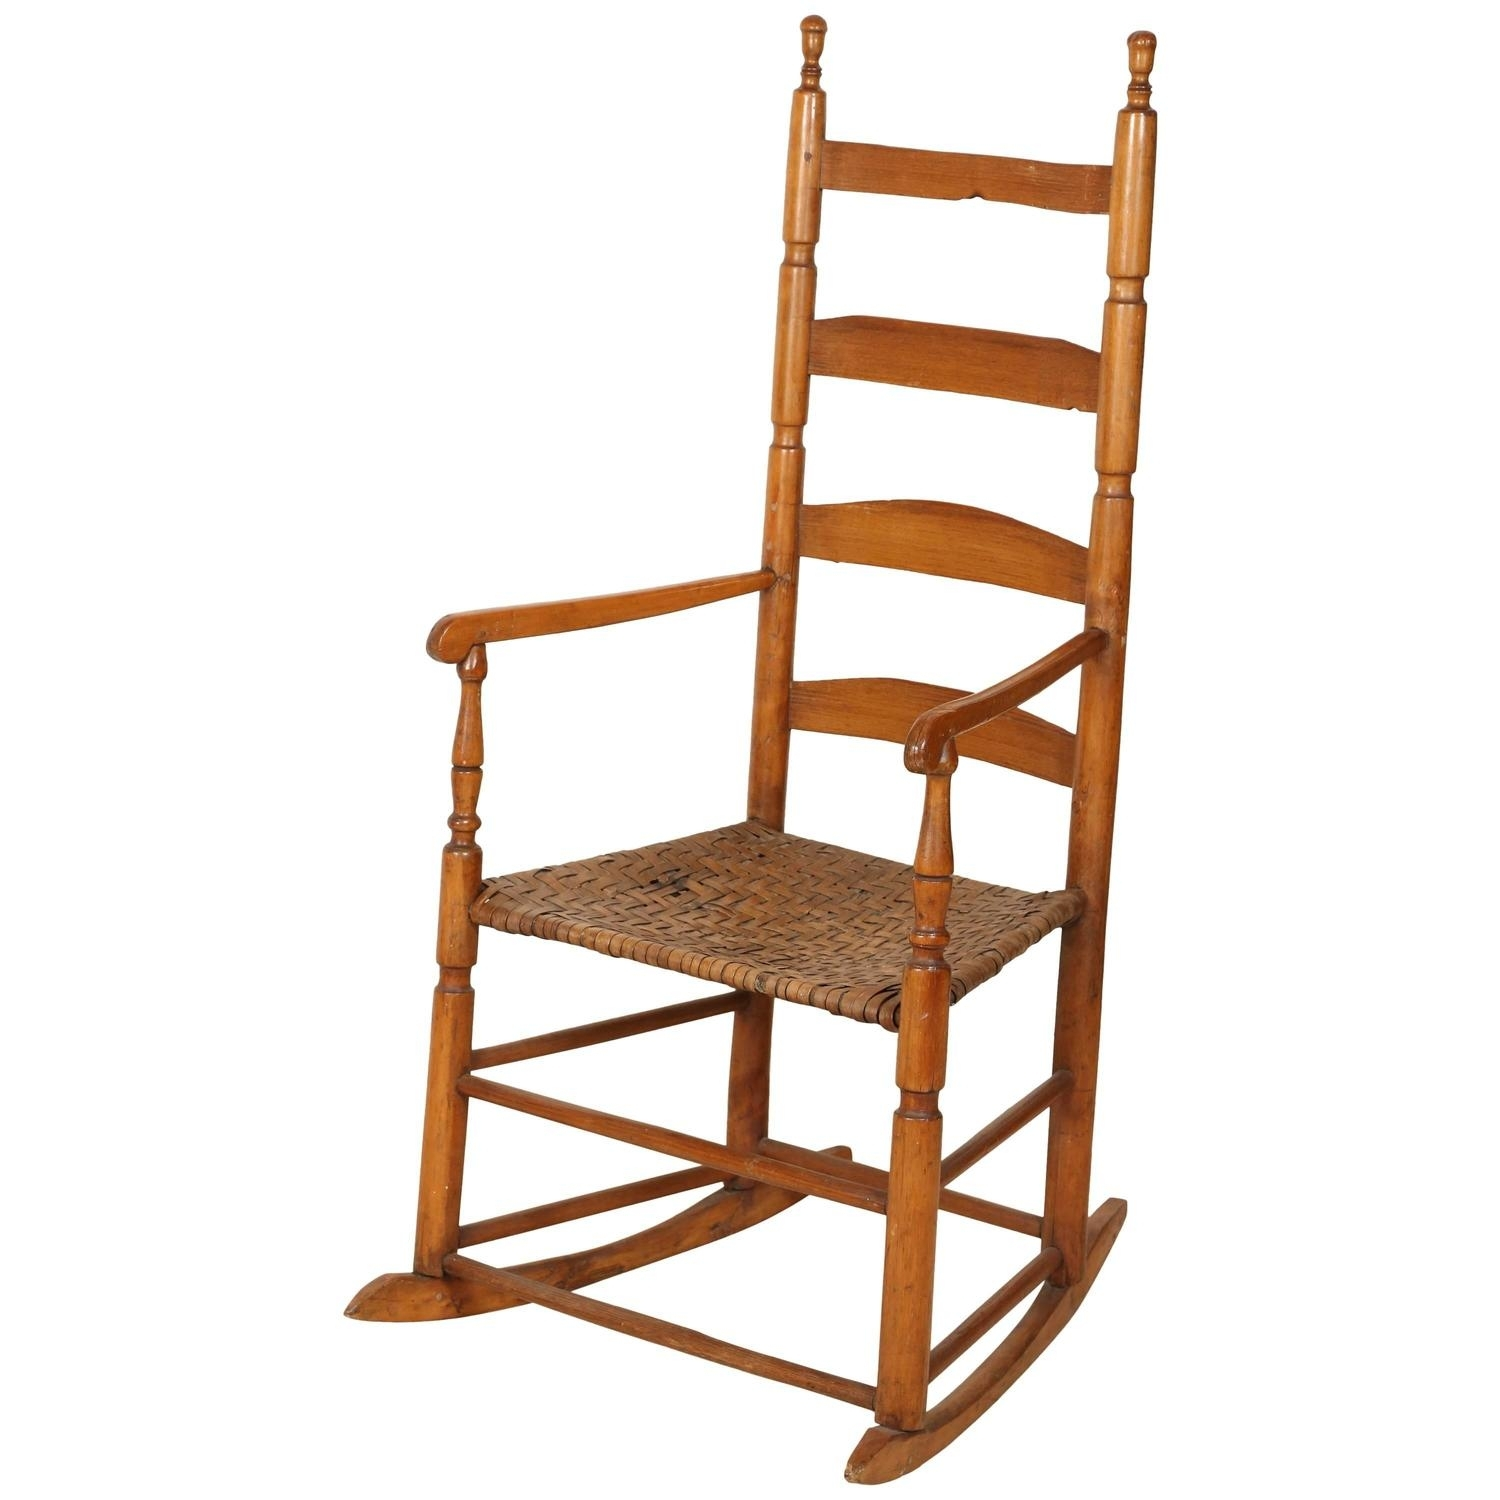 Ladder High Back Rocking Chair For Sale At 1Stdibs Regarding High Back Rocking Chairs (#5 of 15)